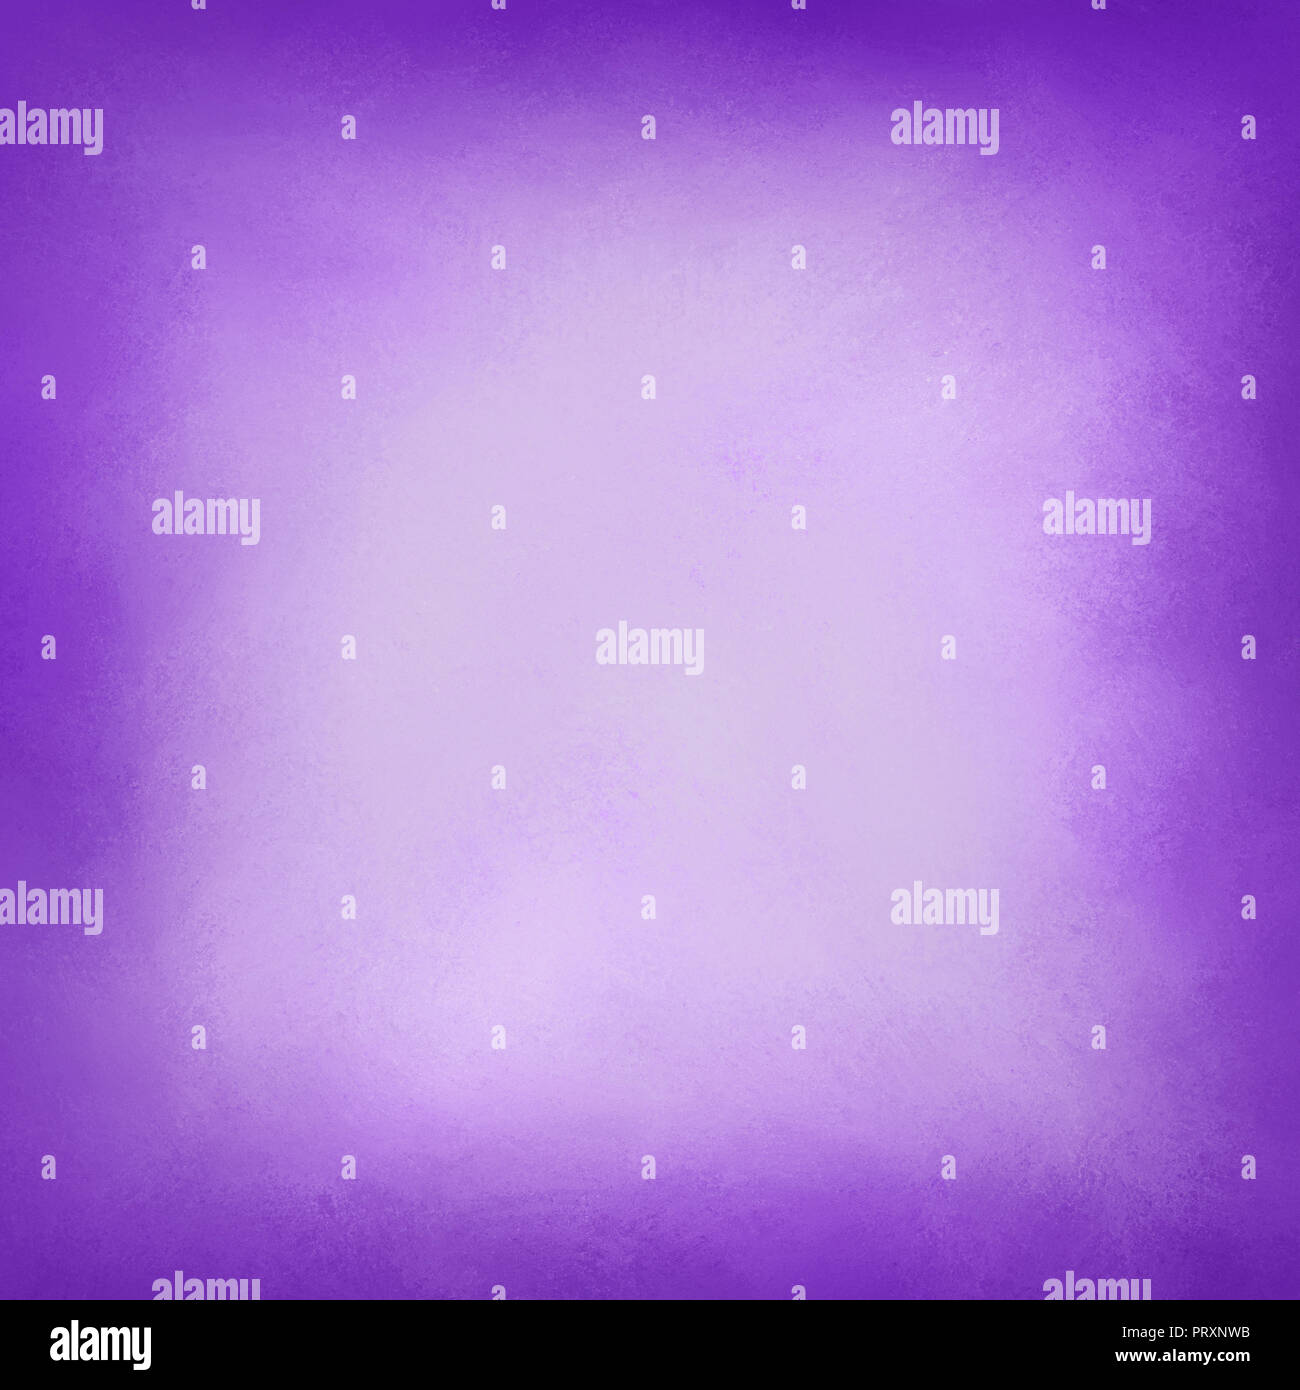 purple background with dark border and soft lilac or lavender color